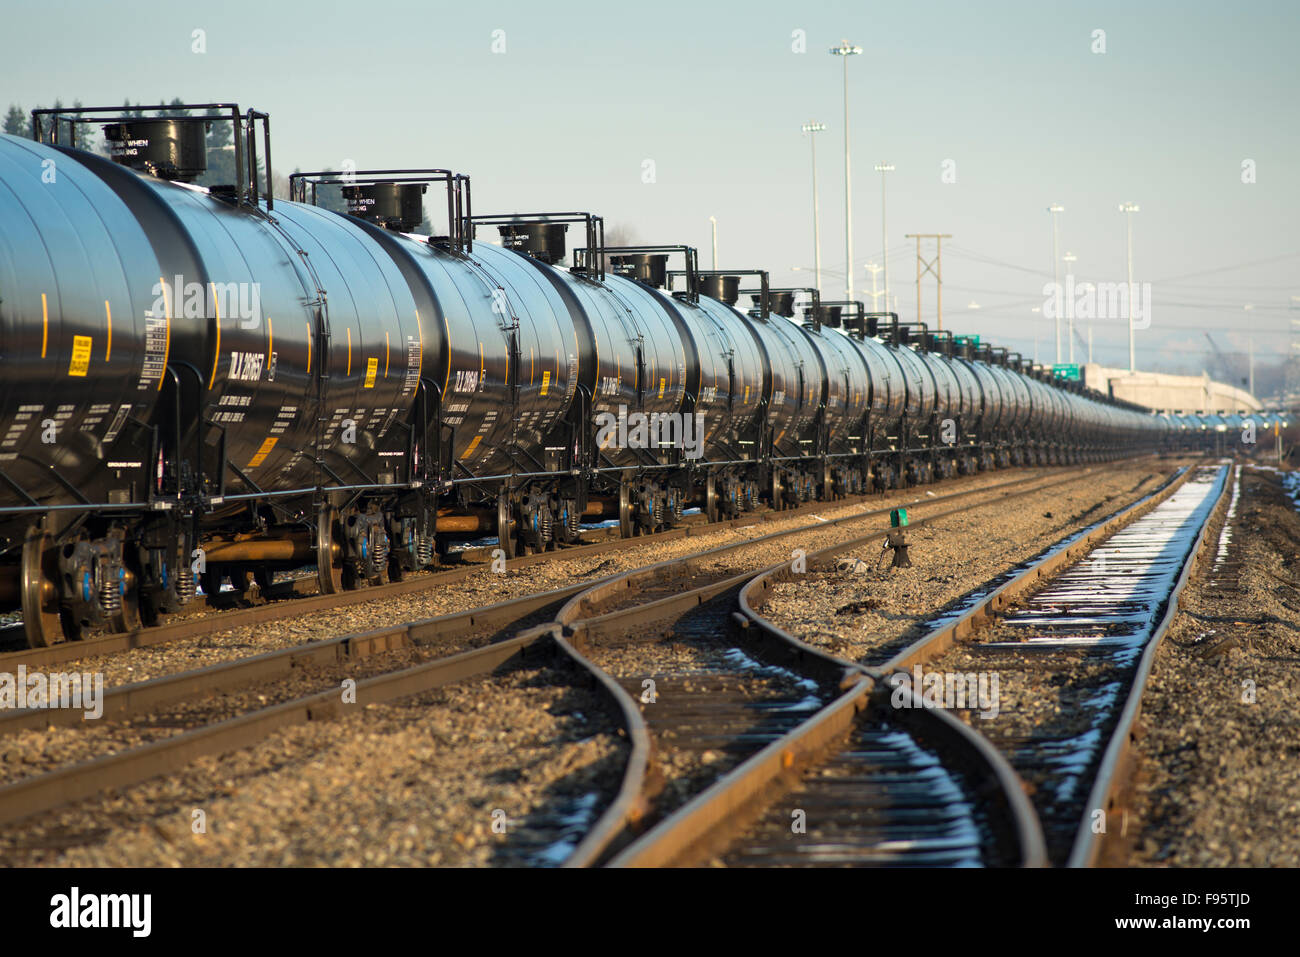 Crude oil rail cars sitting on tracks in Coquitlam, BC, Canada. - Stock Image